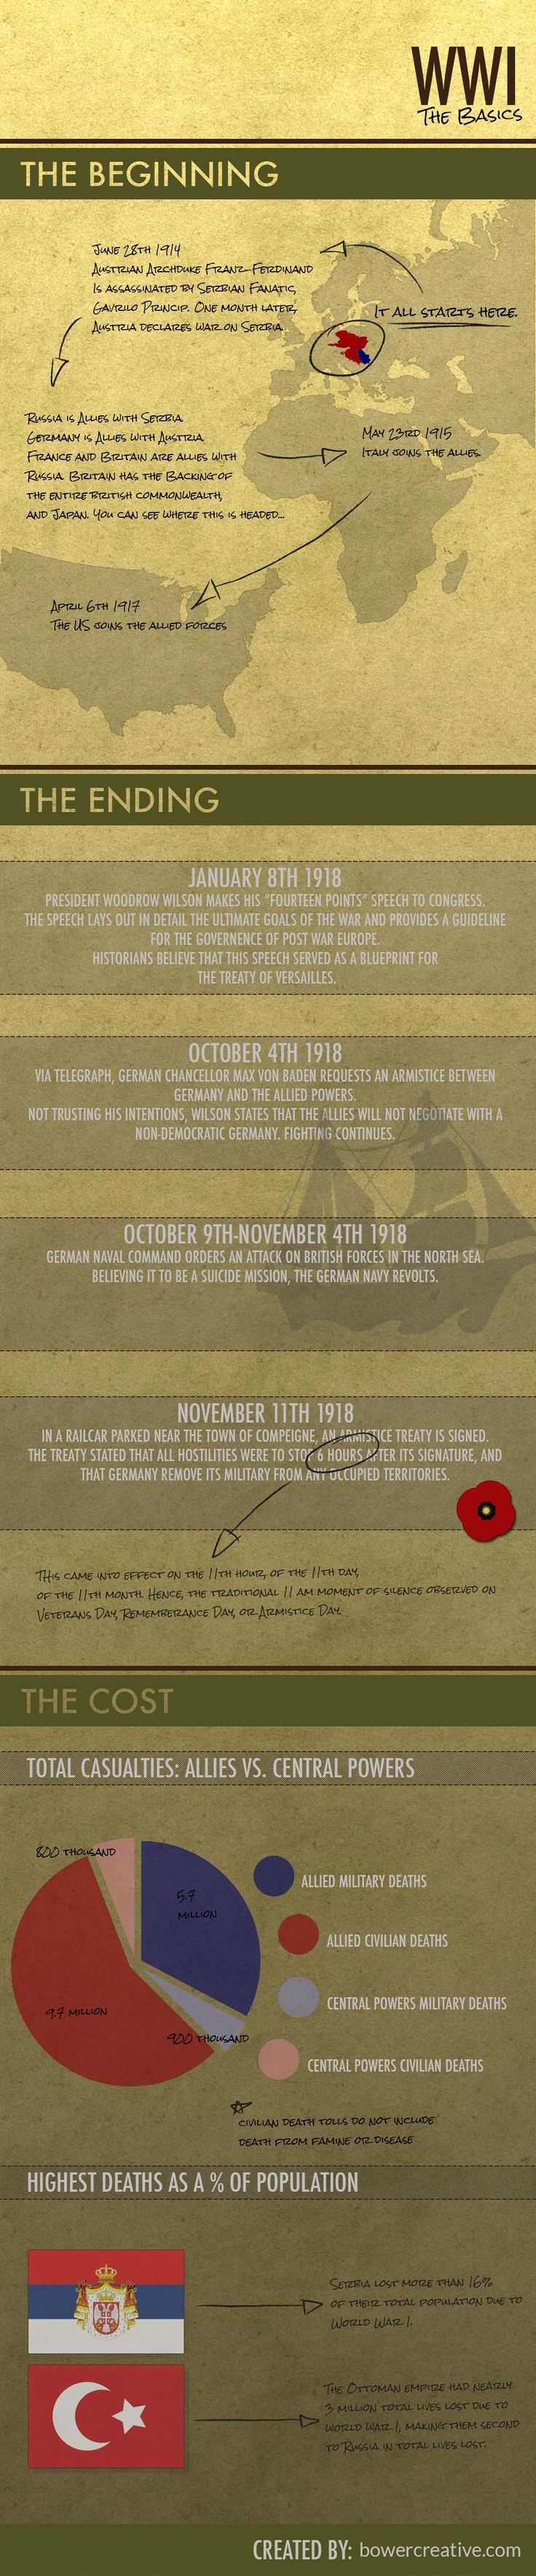 A very quick briefing on the events of World War 1. Basic chronology and a casualty report are included. It is remembrance day today after all... Re-Pinned by HistorySimulation.com